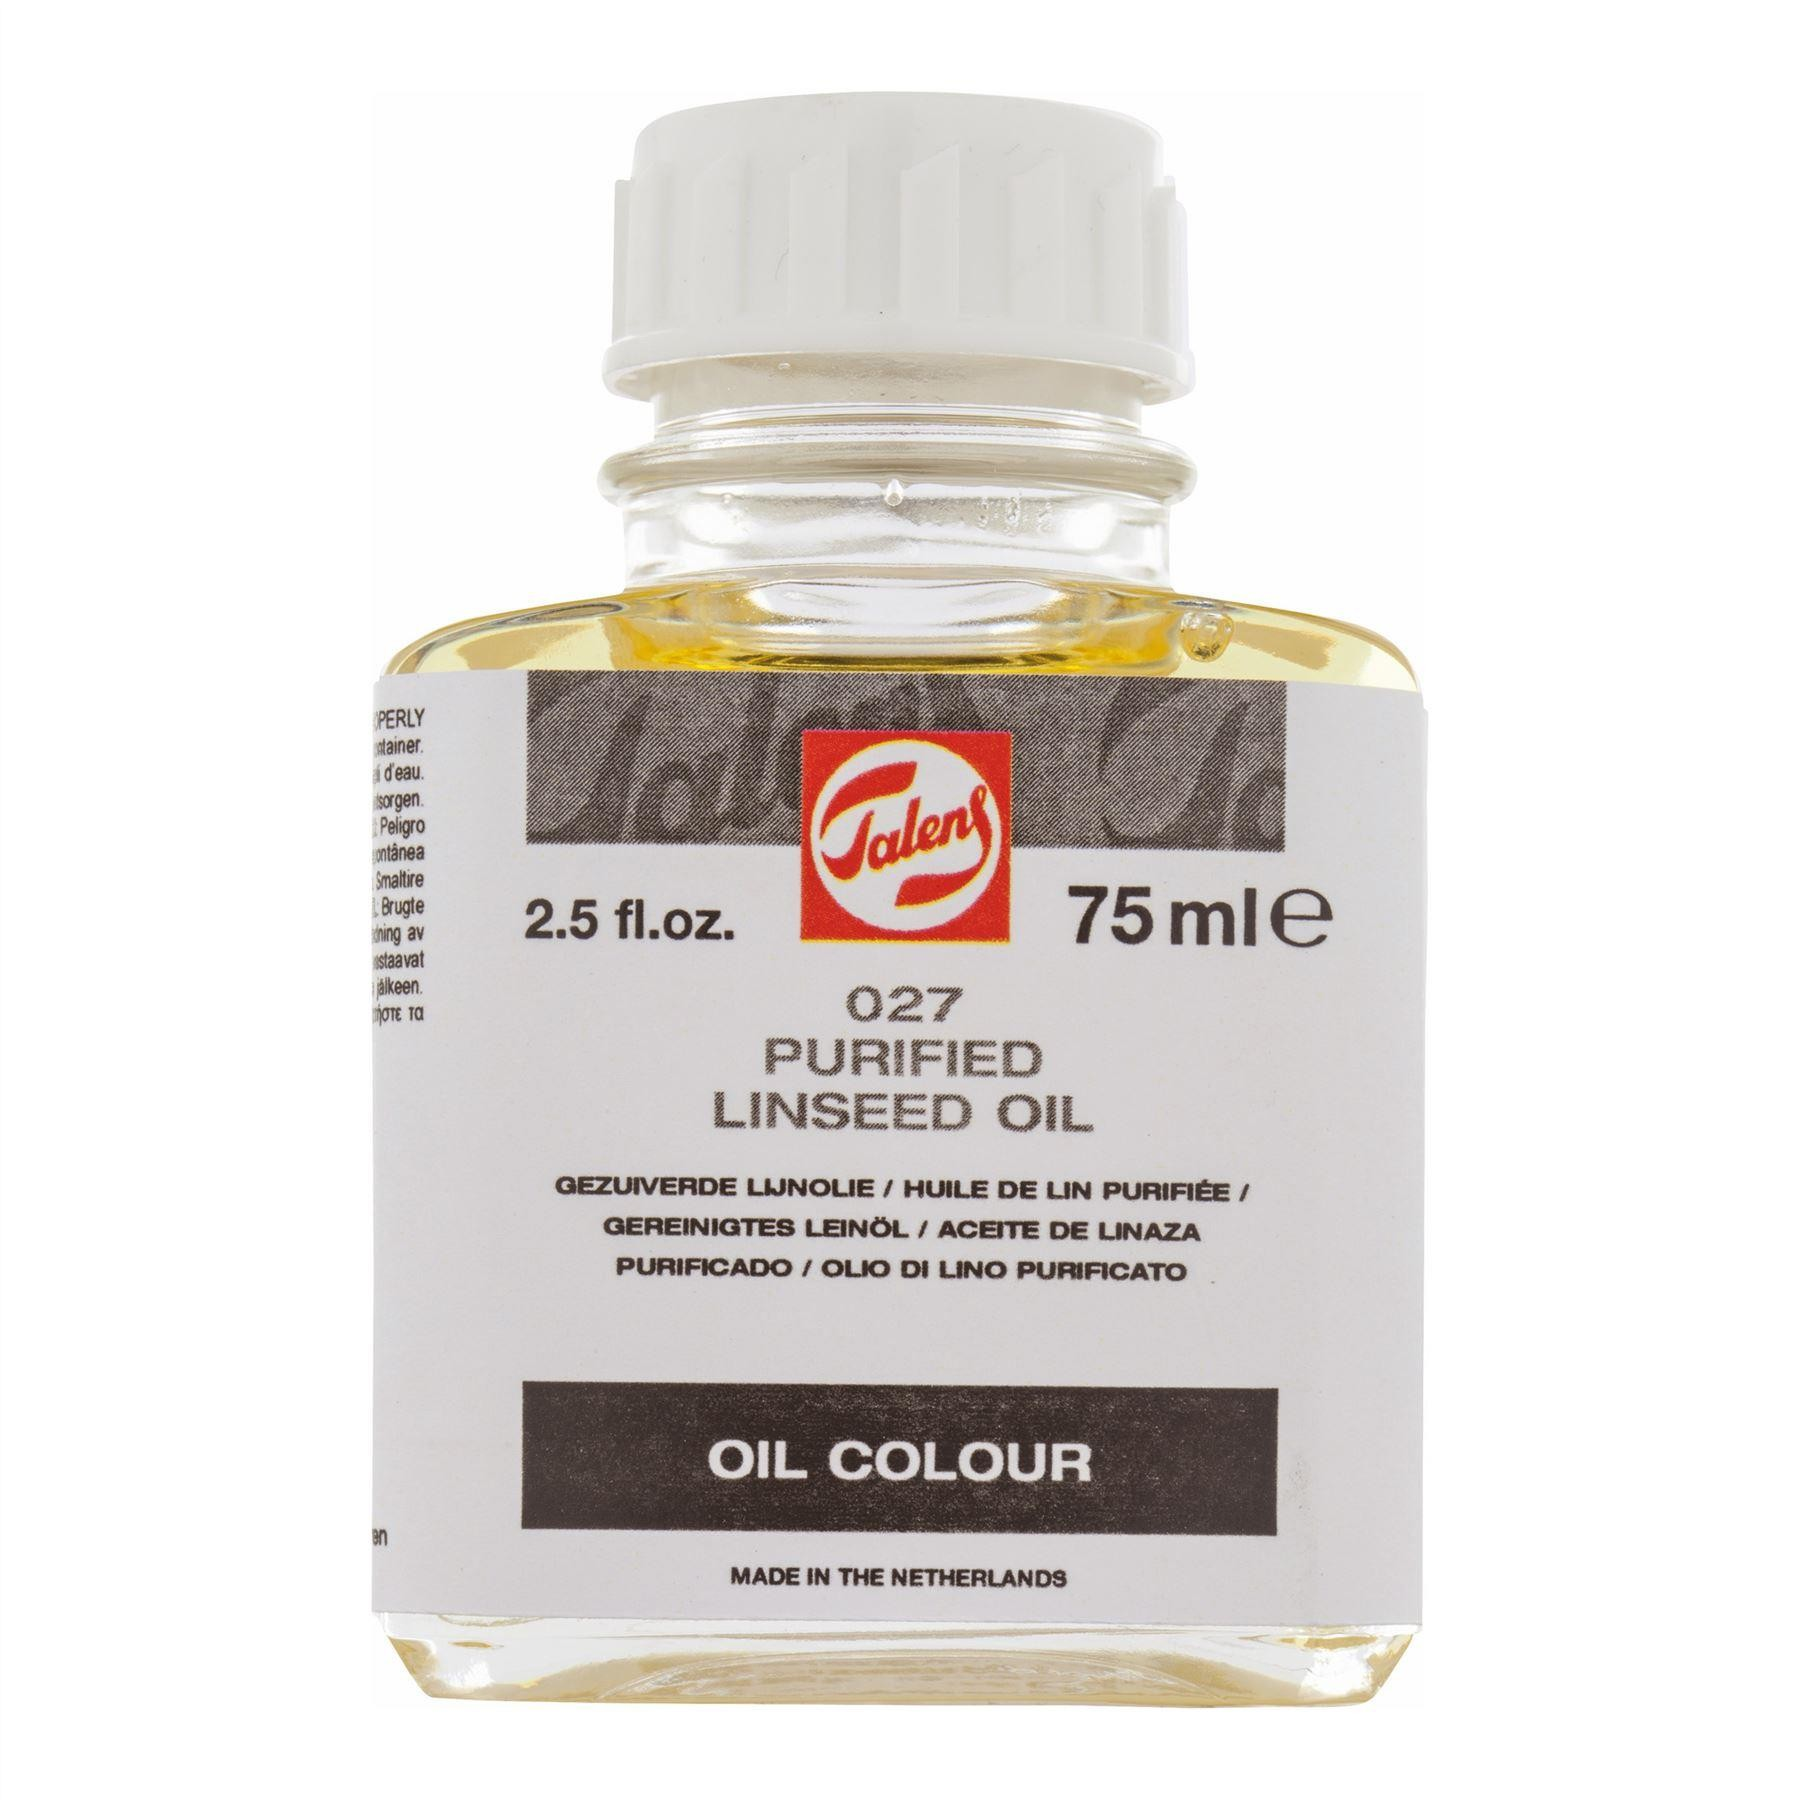 Purifed linseed oil 75ml bottle